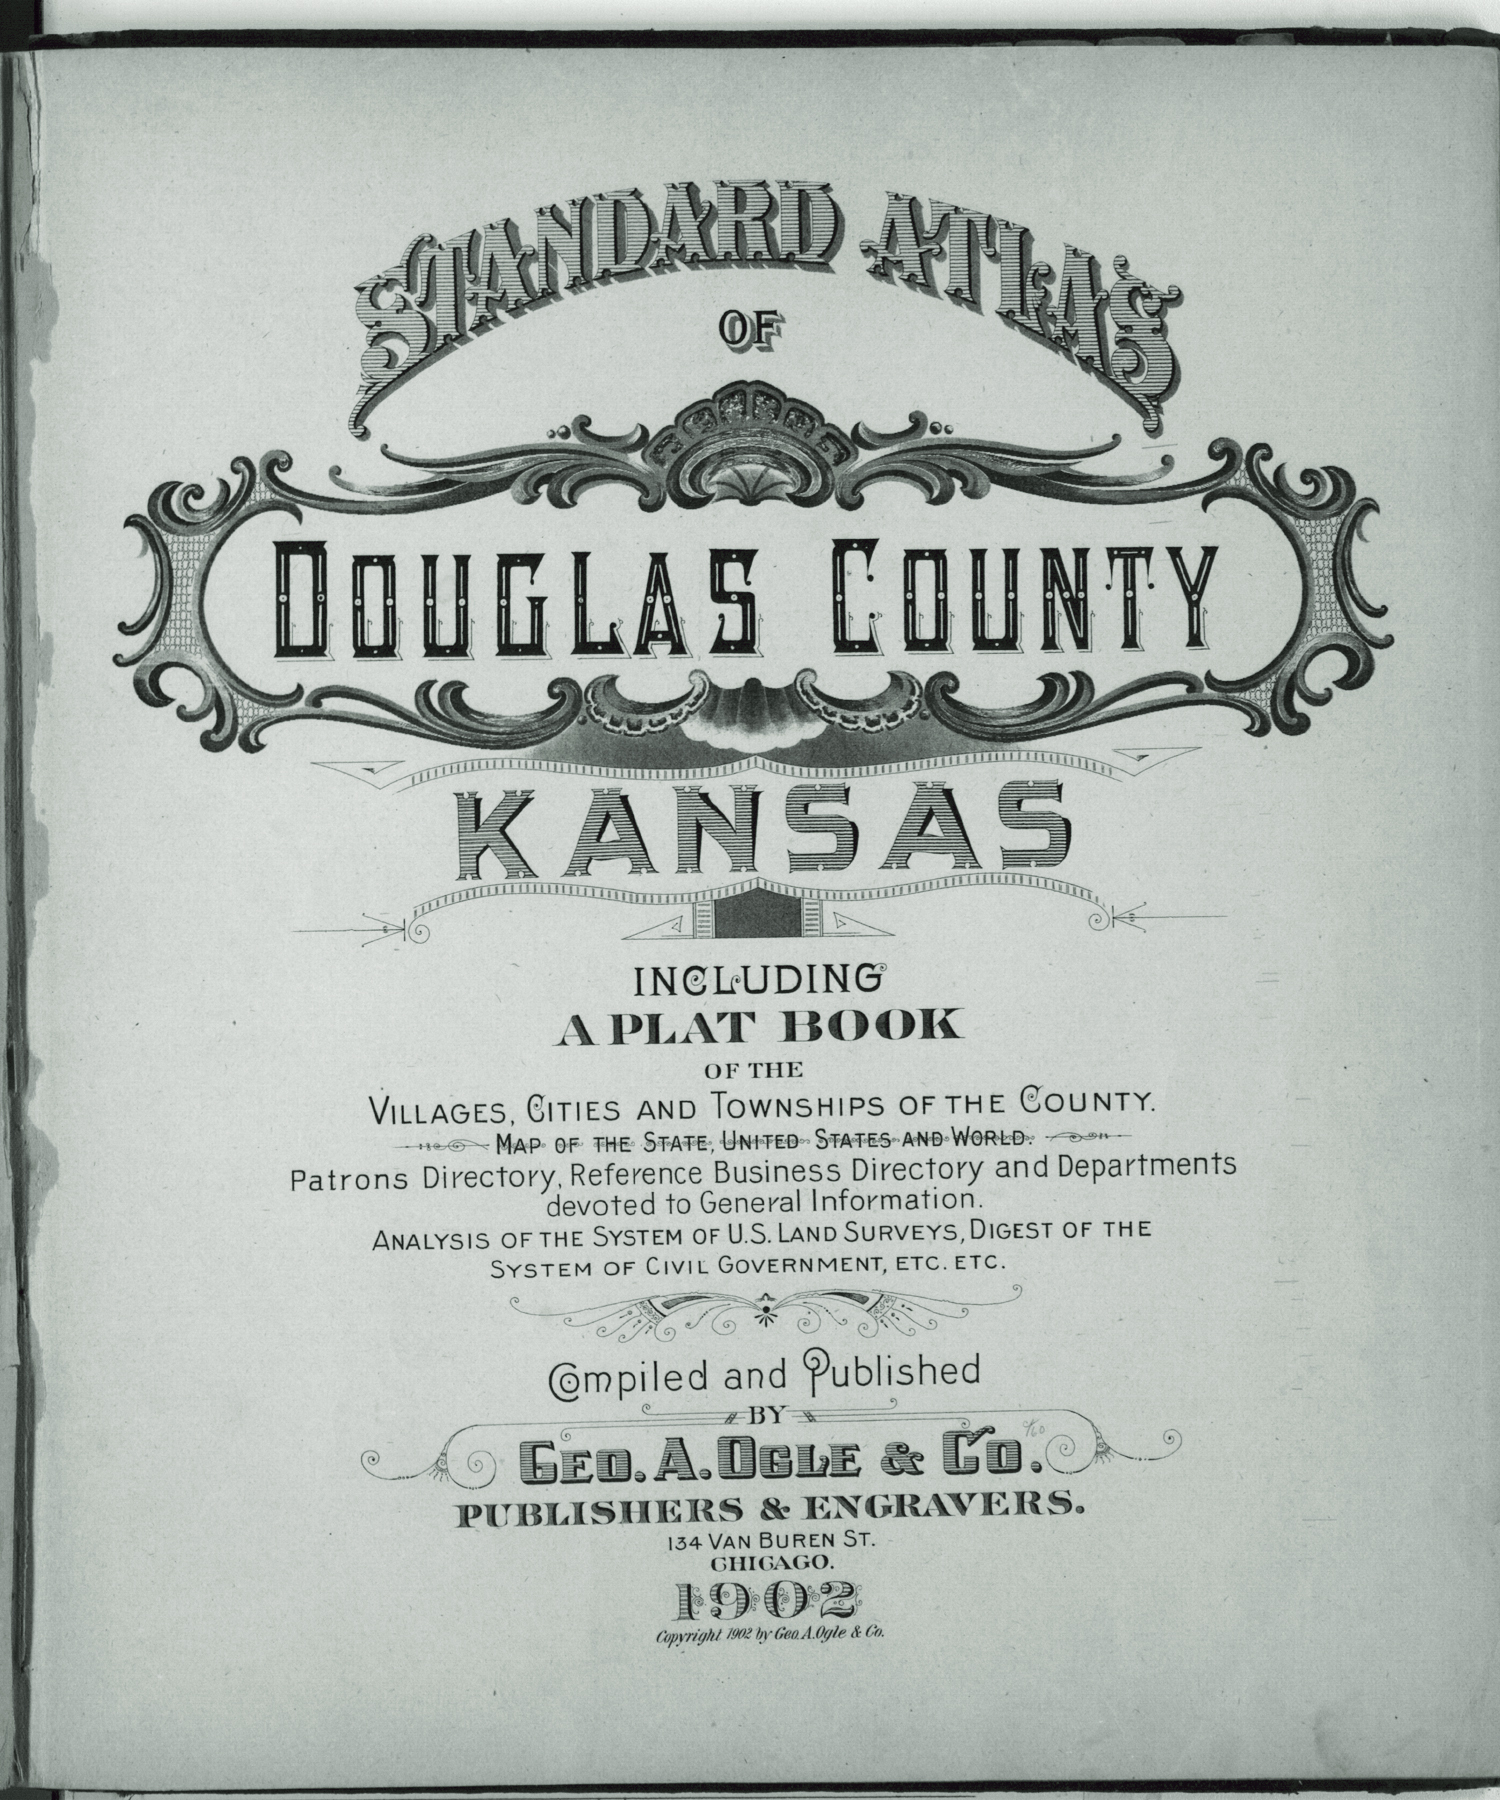 Standard atlas of Douglas County, Kansas - Title Page